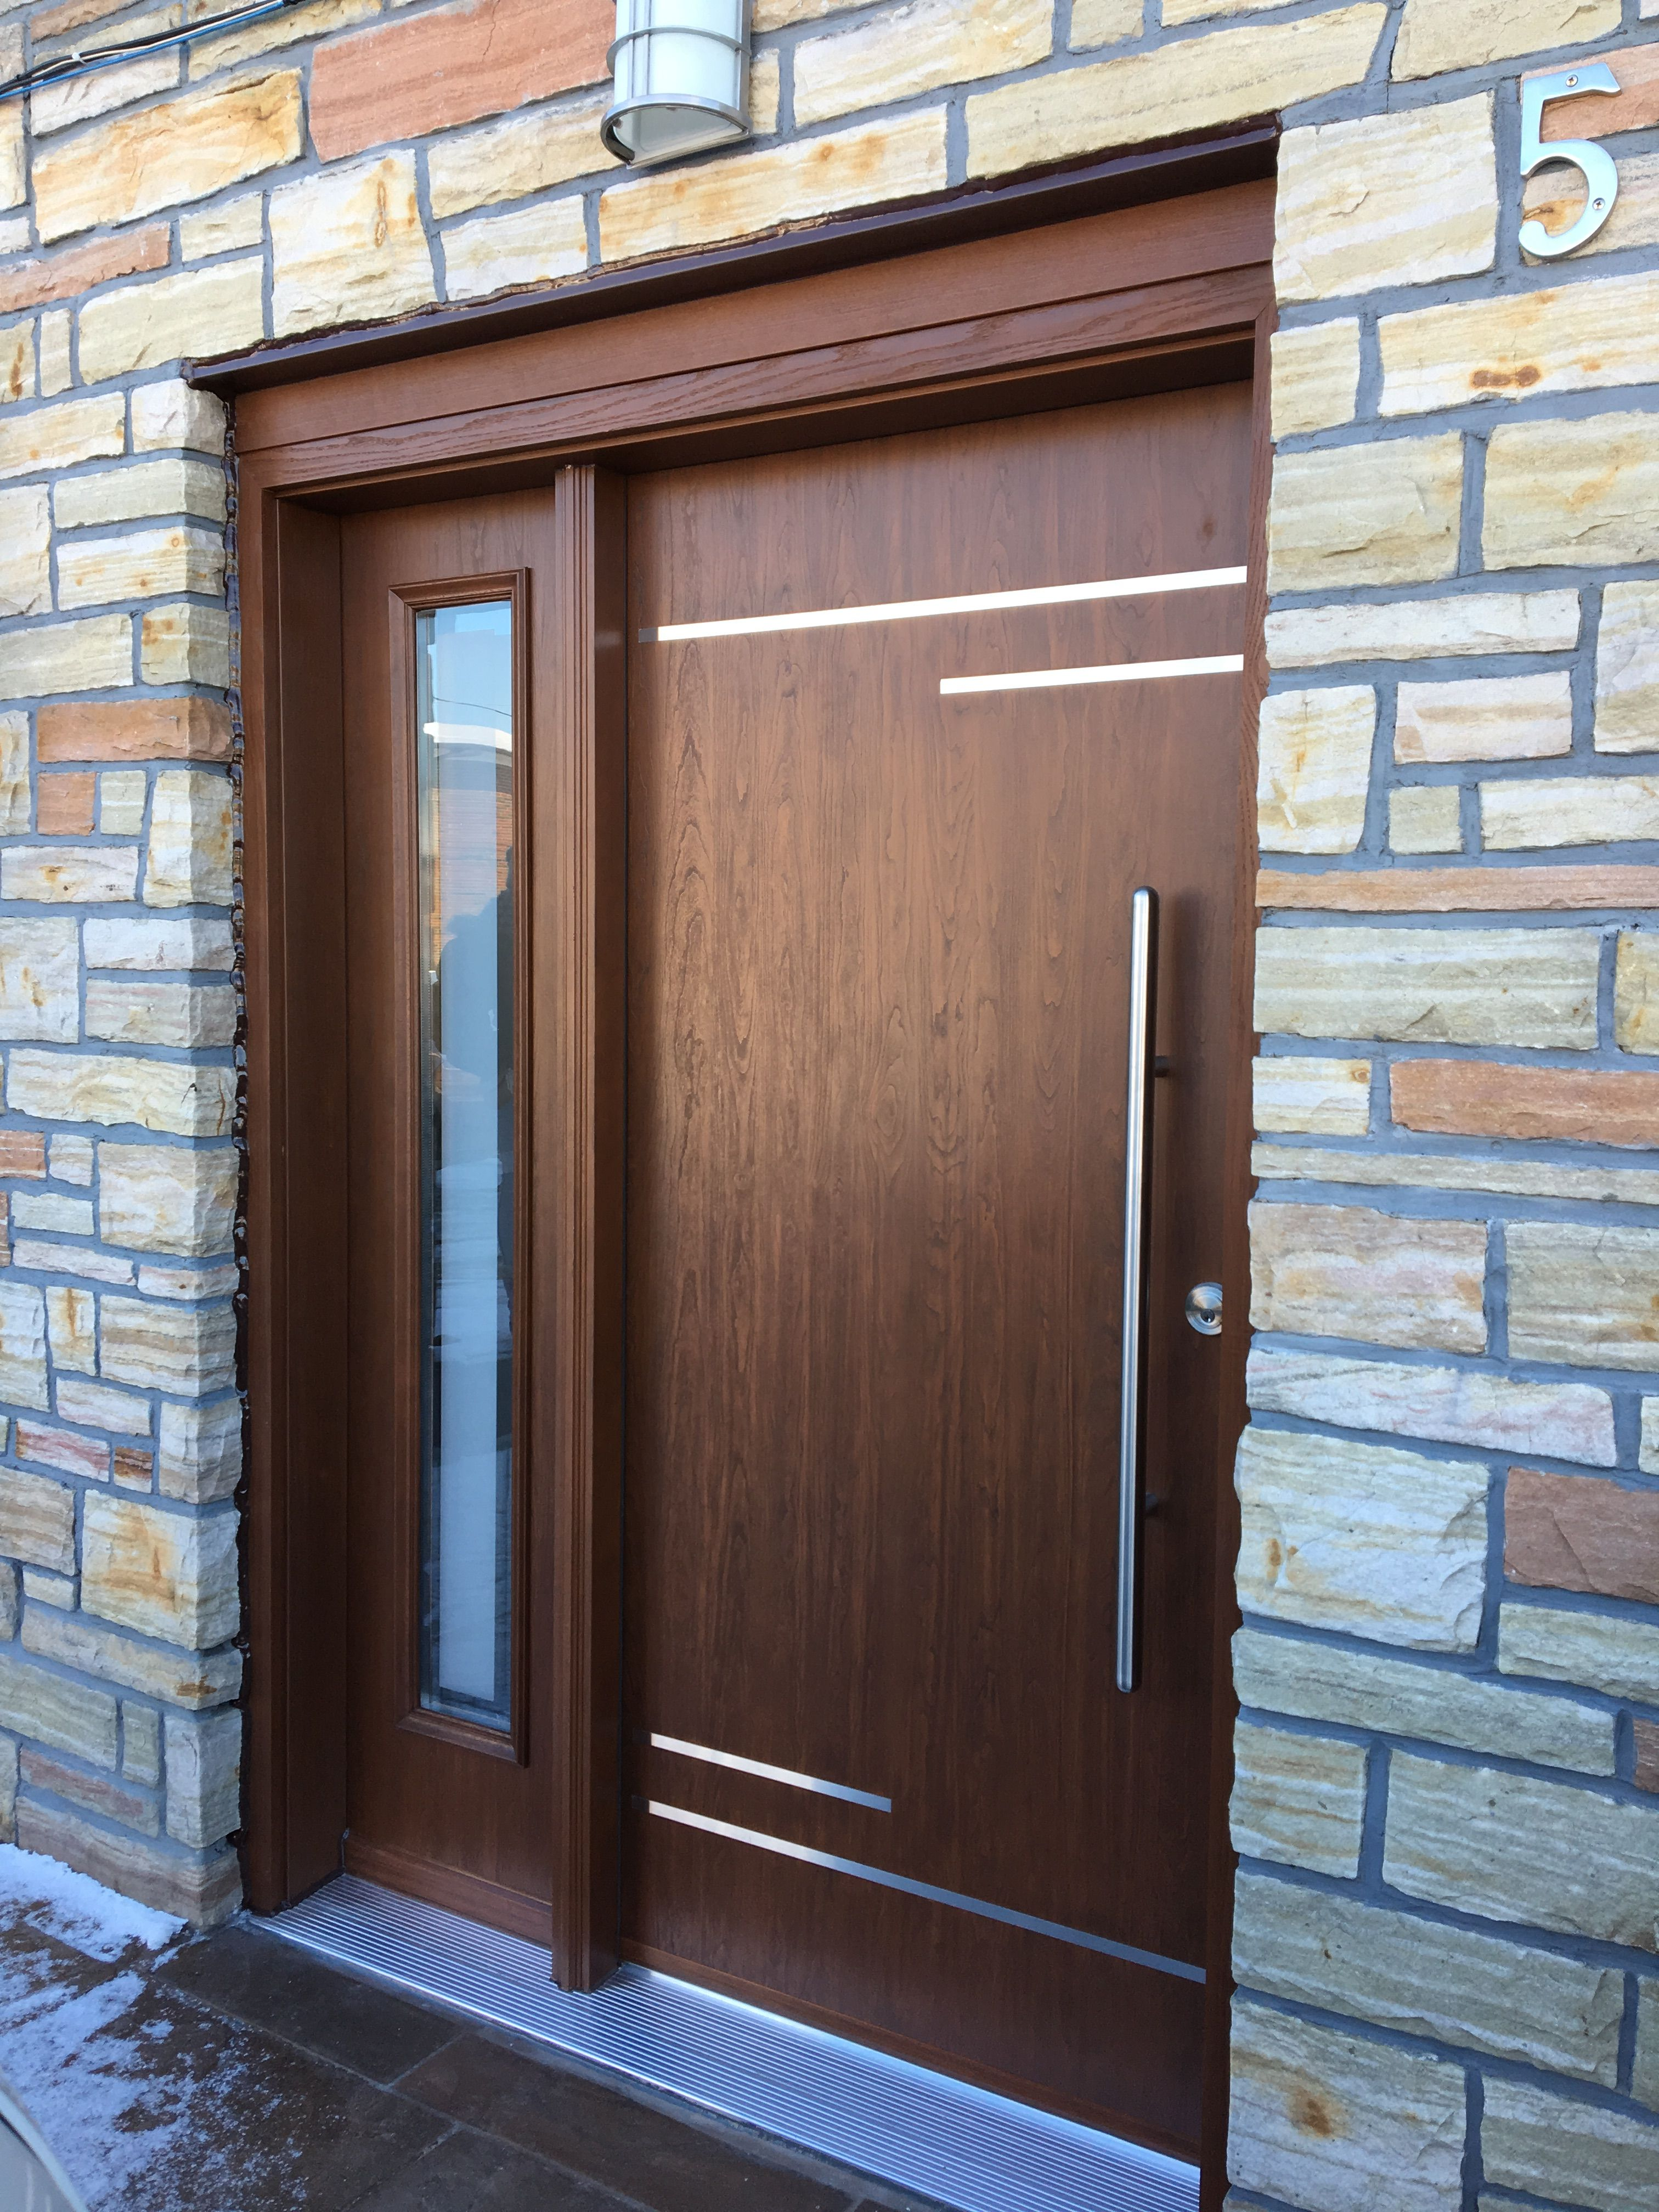 Contemporary fiberglass door with stainless steel inlays and 36 pull bar stained in kv light cherry sandblast 0864 sidelite with 1 clear border